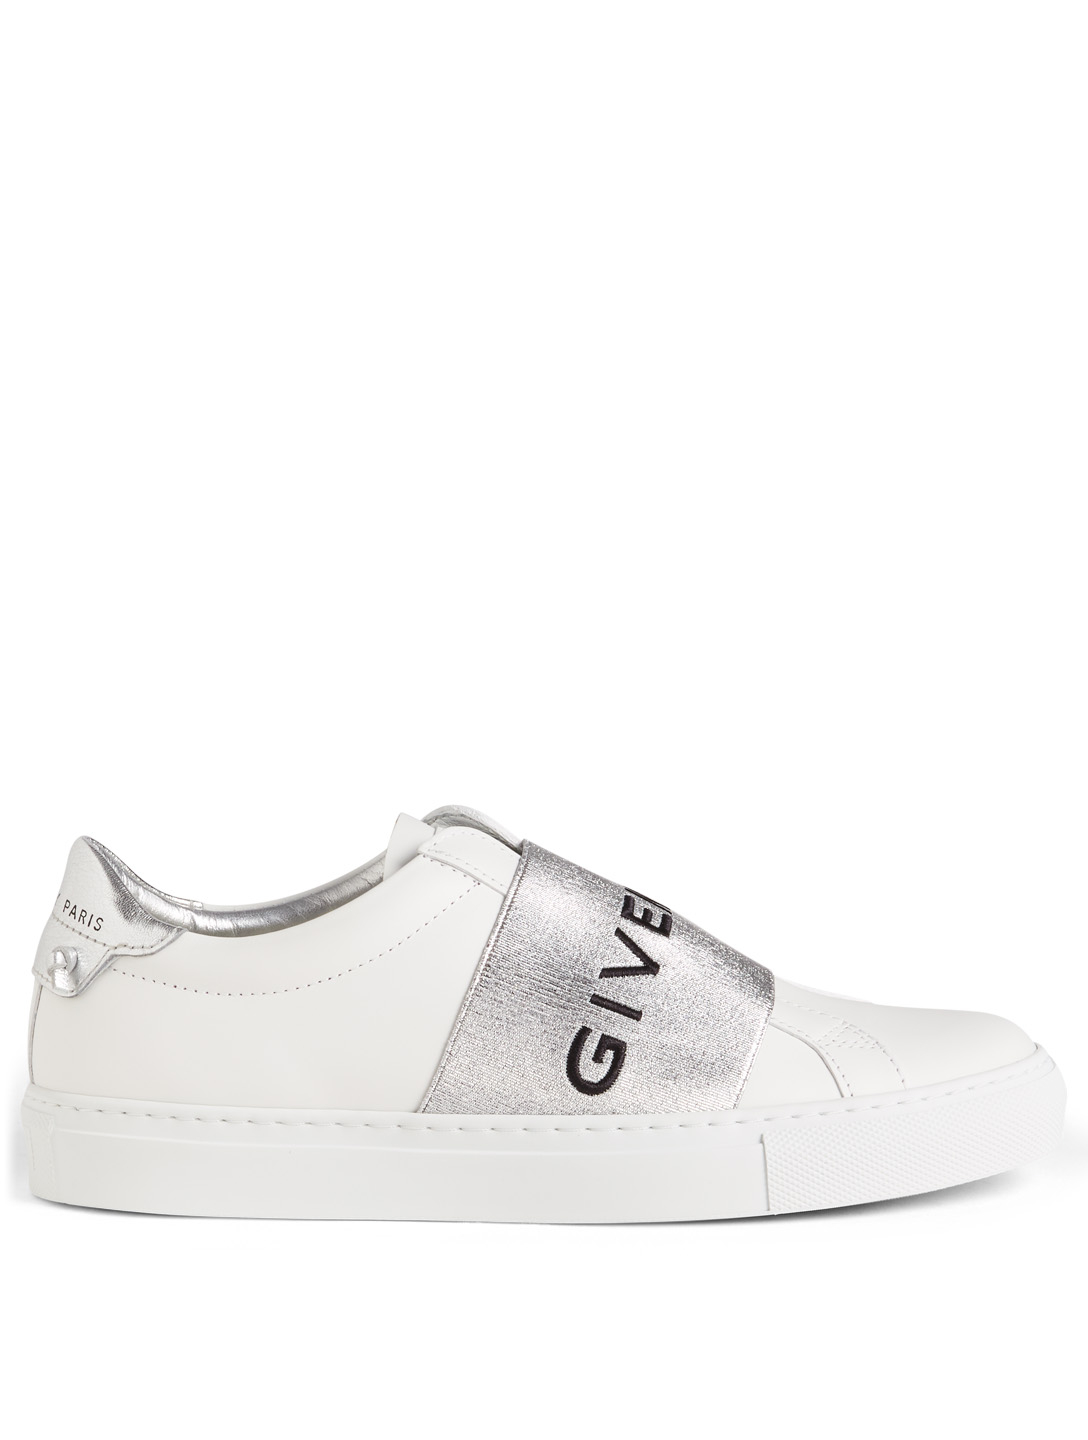 719ecf11a99 GIVENCHY Urban Street Leather Slip-On Sneakers Women s Silver ...